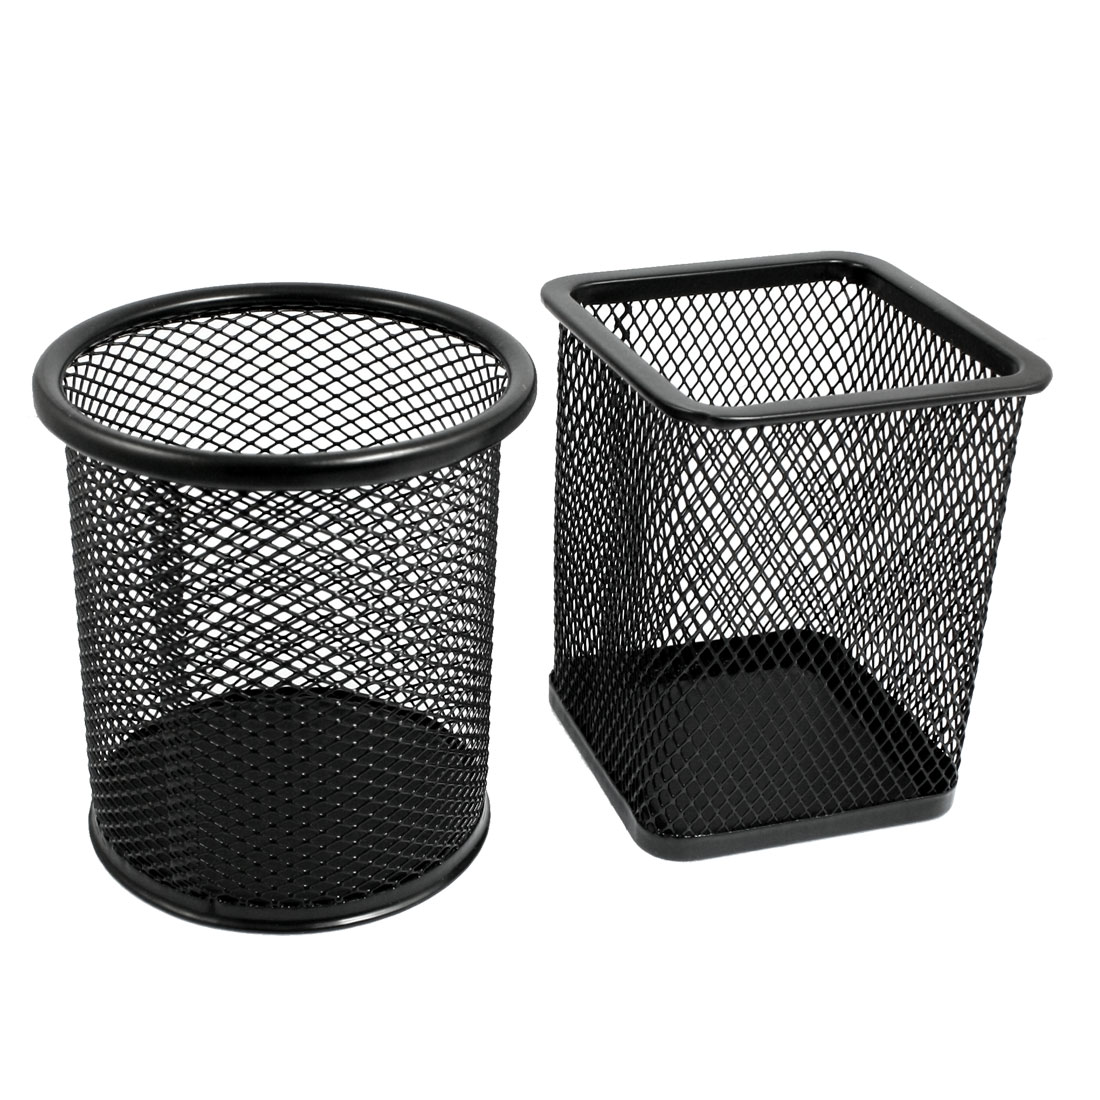 2 Pcs Mesh Rectangle Cylinder Stationery Holder Box Container Black